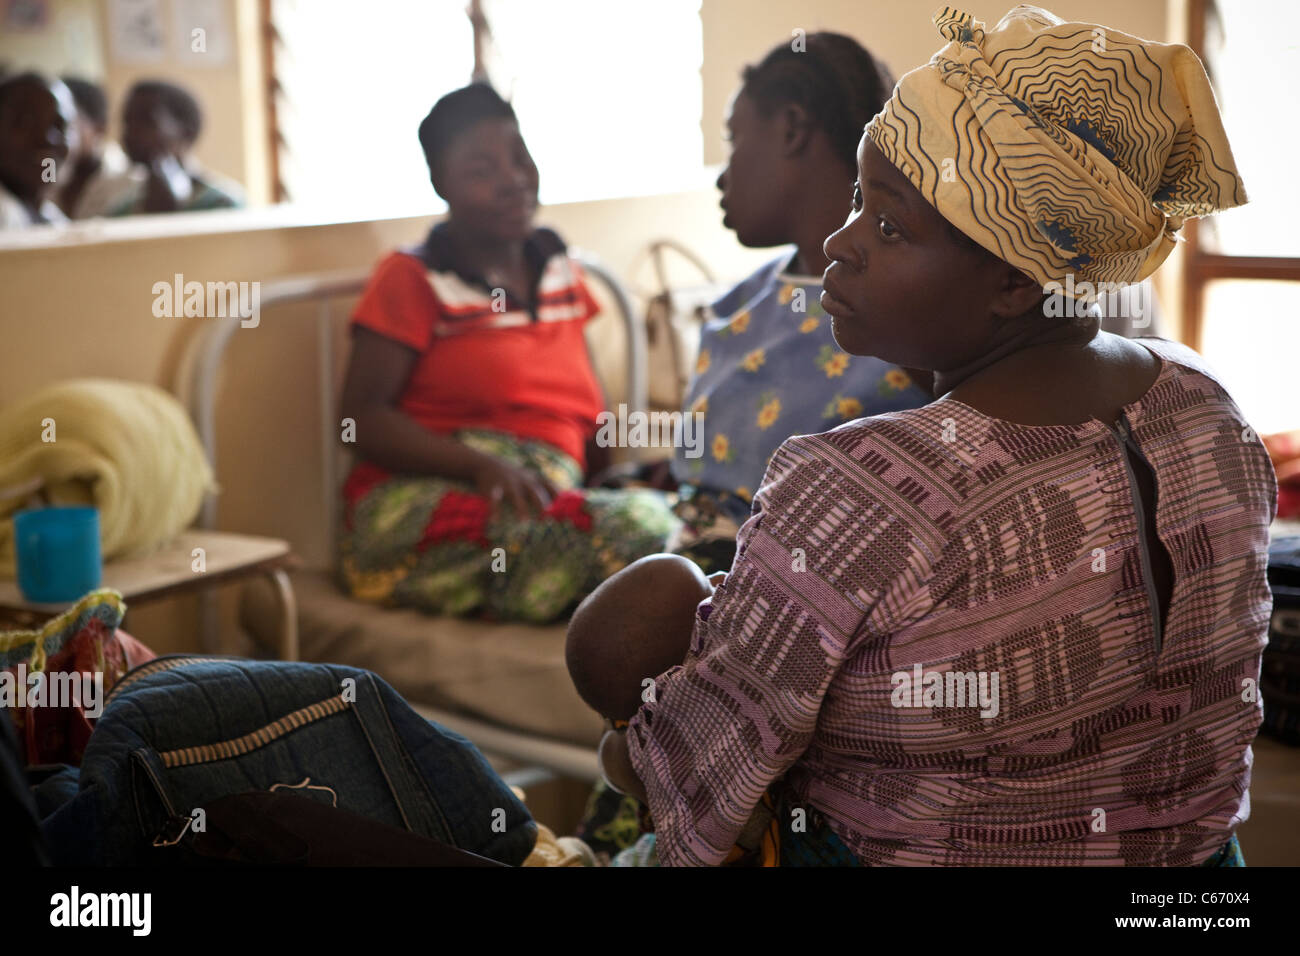 Women sit in the maternity ward of a hospital in Dedza, Malawi, Southern Africa. - Stock Image